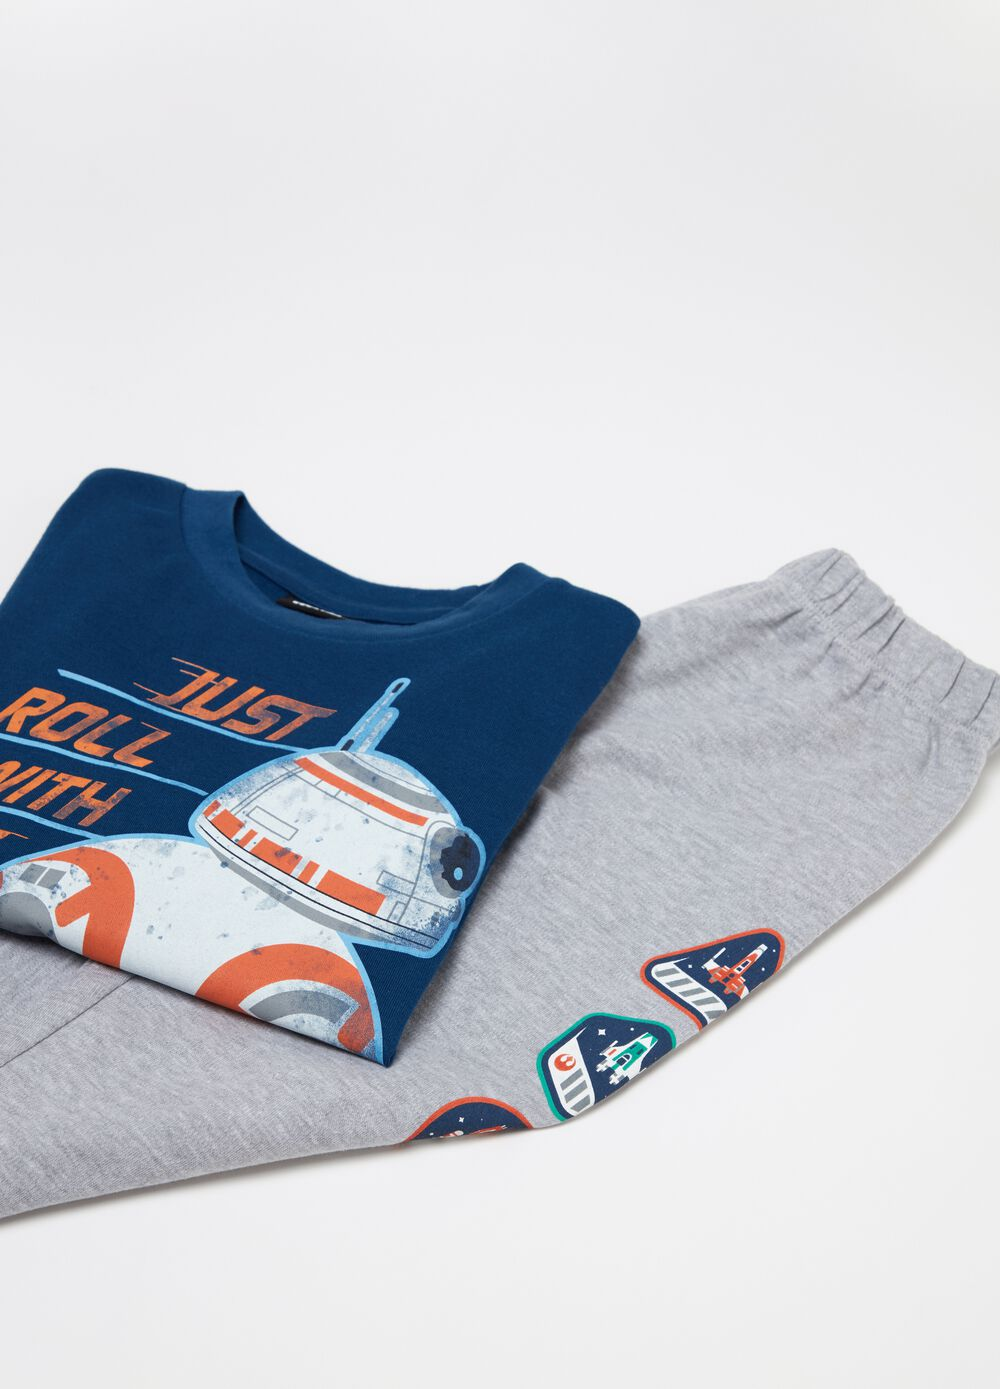 Star Wars top and trousers pyjama set